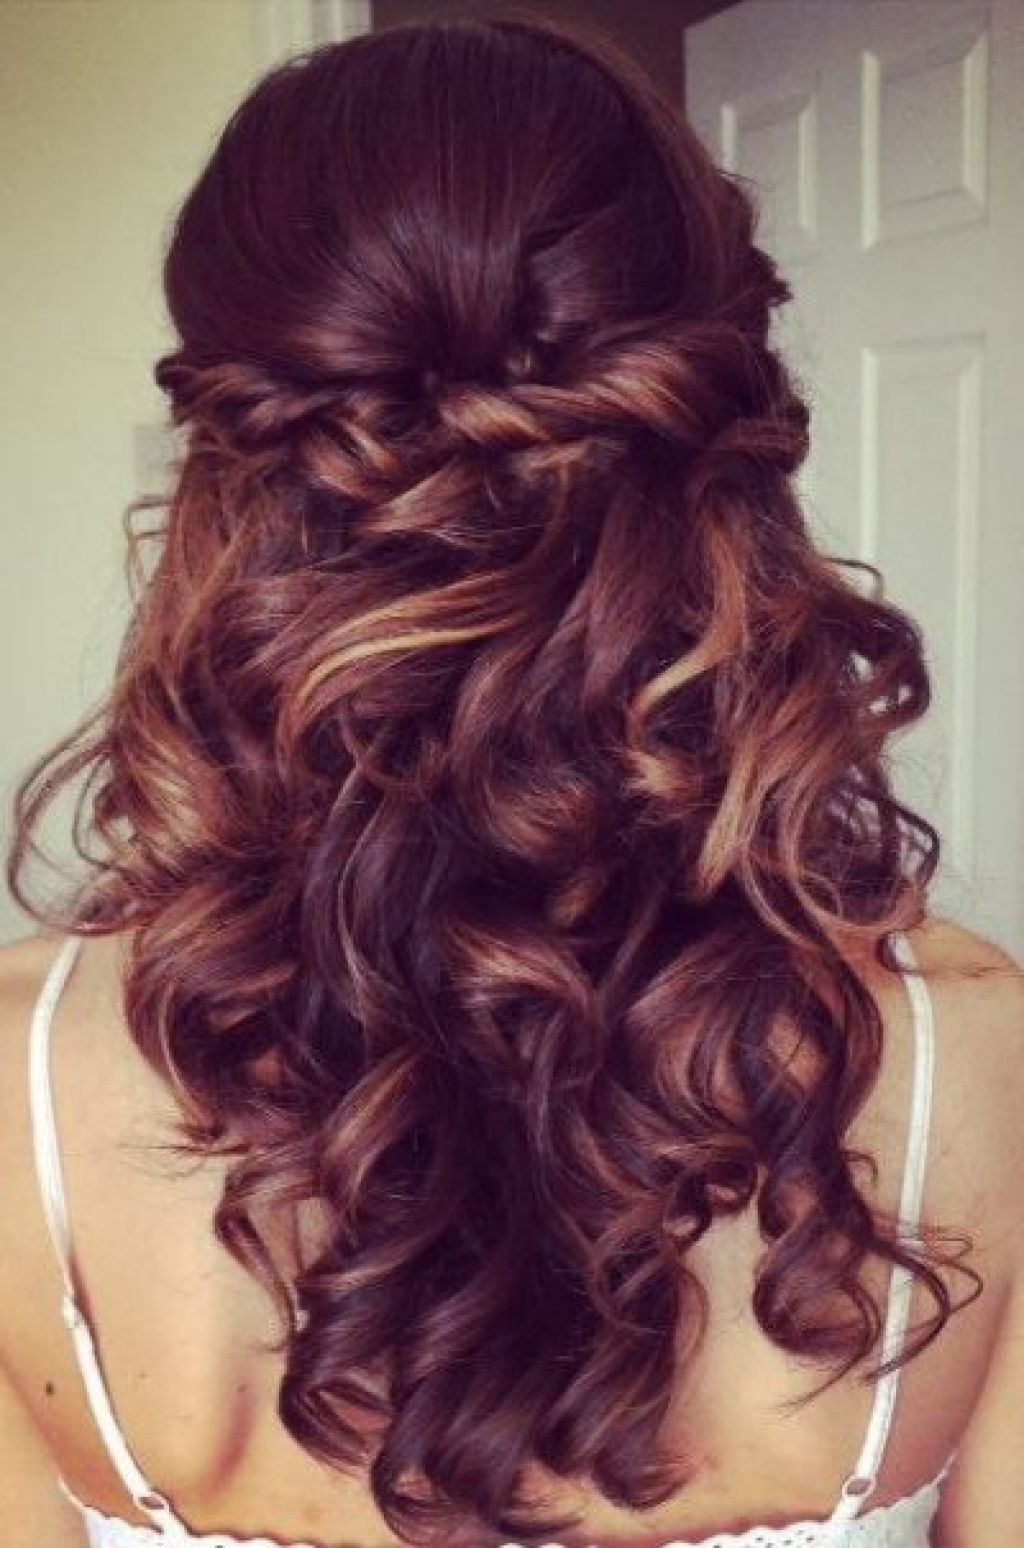 Trendy Formal Half Ponytail Hairstyles Intended For Elegant Curly Half Updo Prom Hairstyle With Bouncy Long Curls (View 8 of 20)